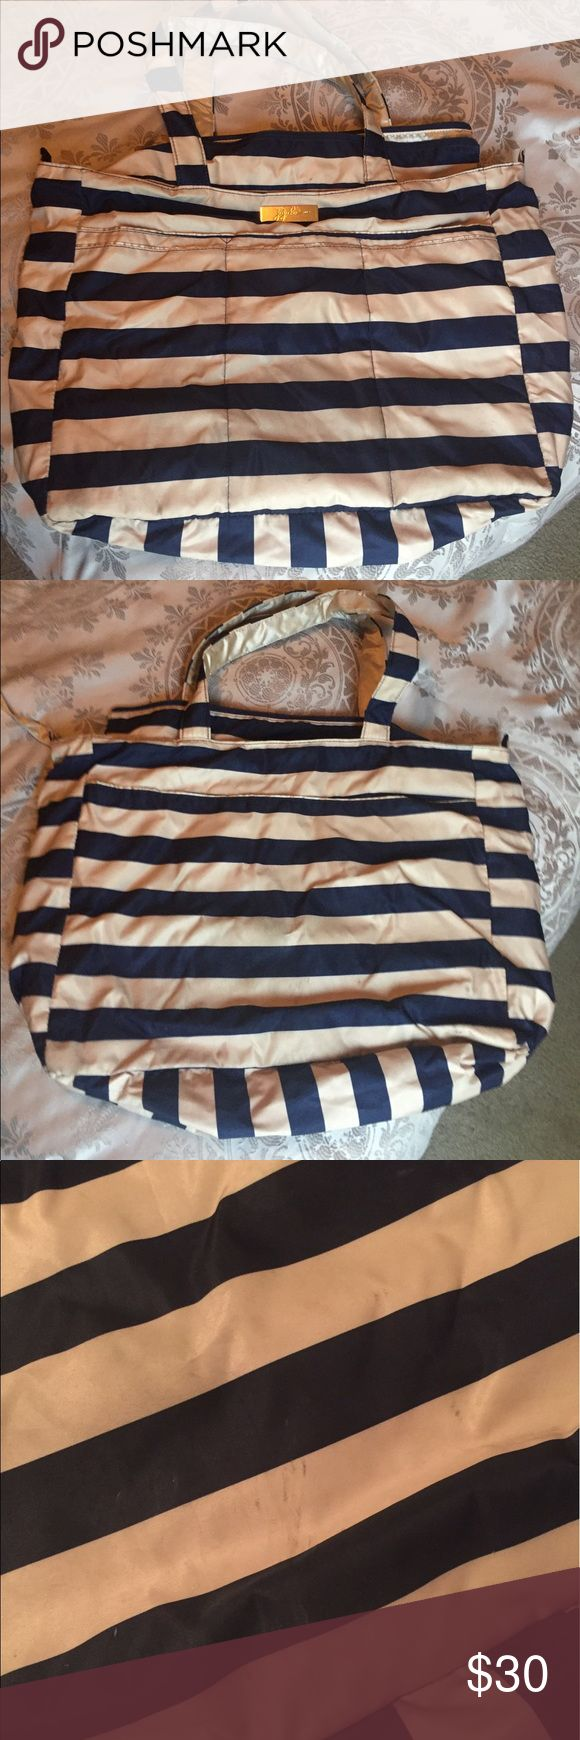 JuJuBe Super Be Good condition jujube Bags Baby Bags